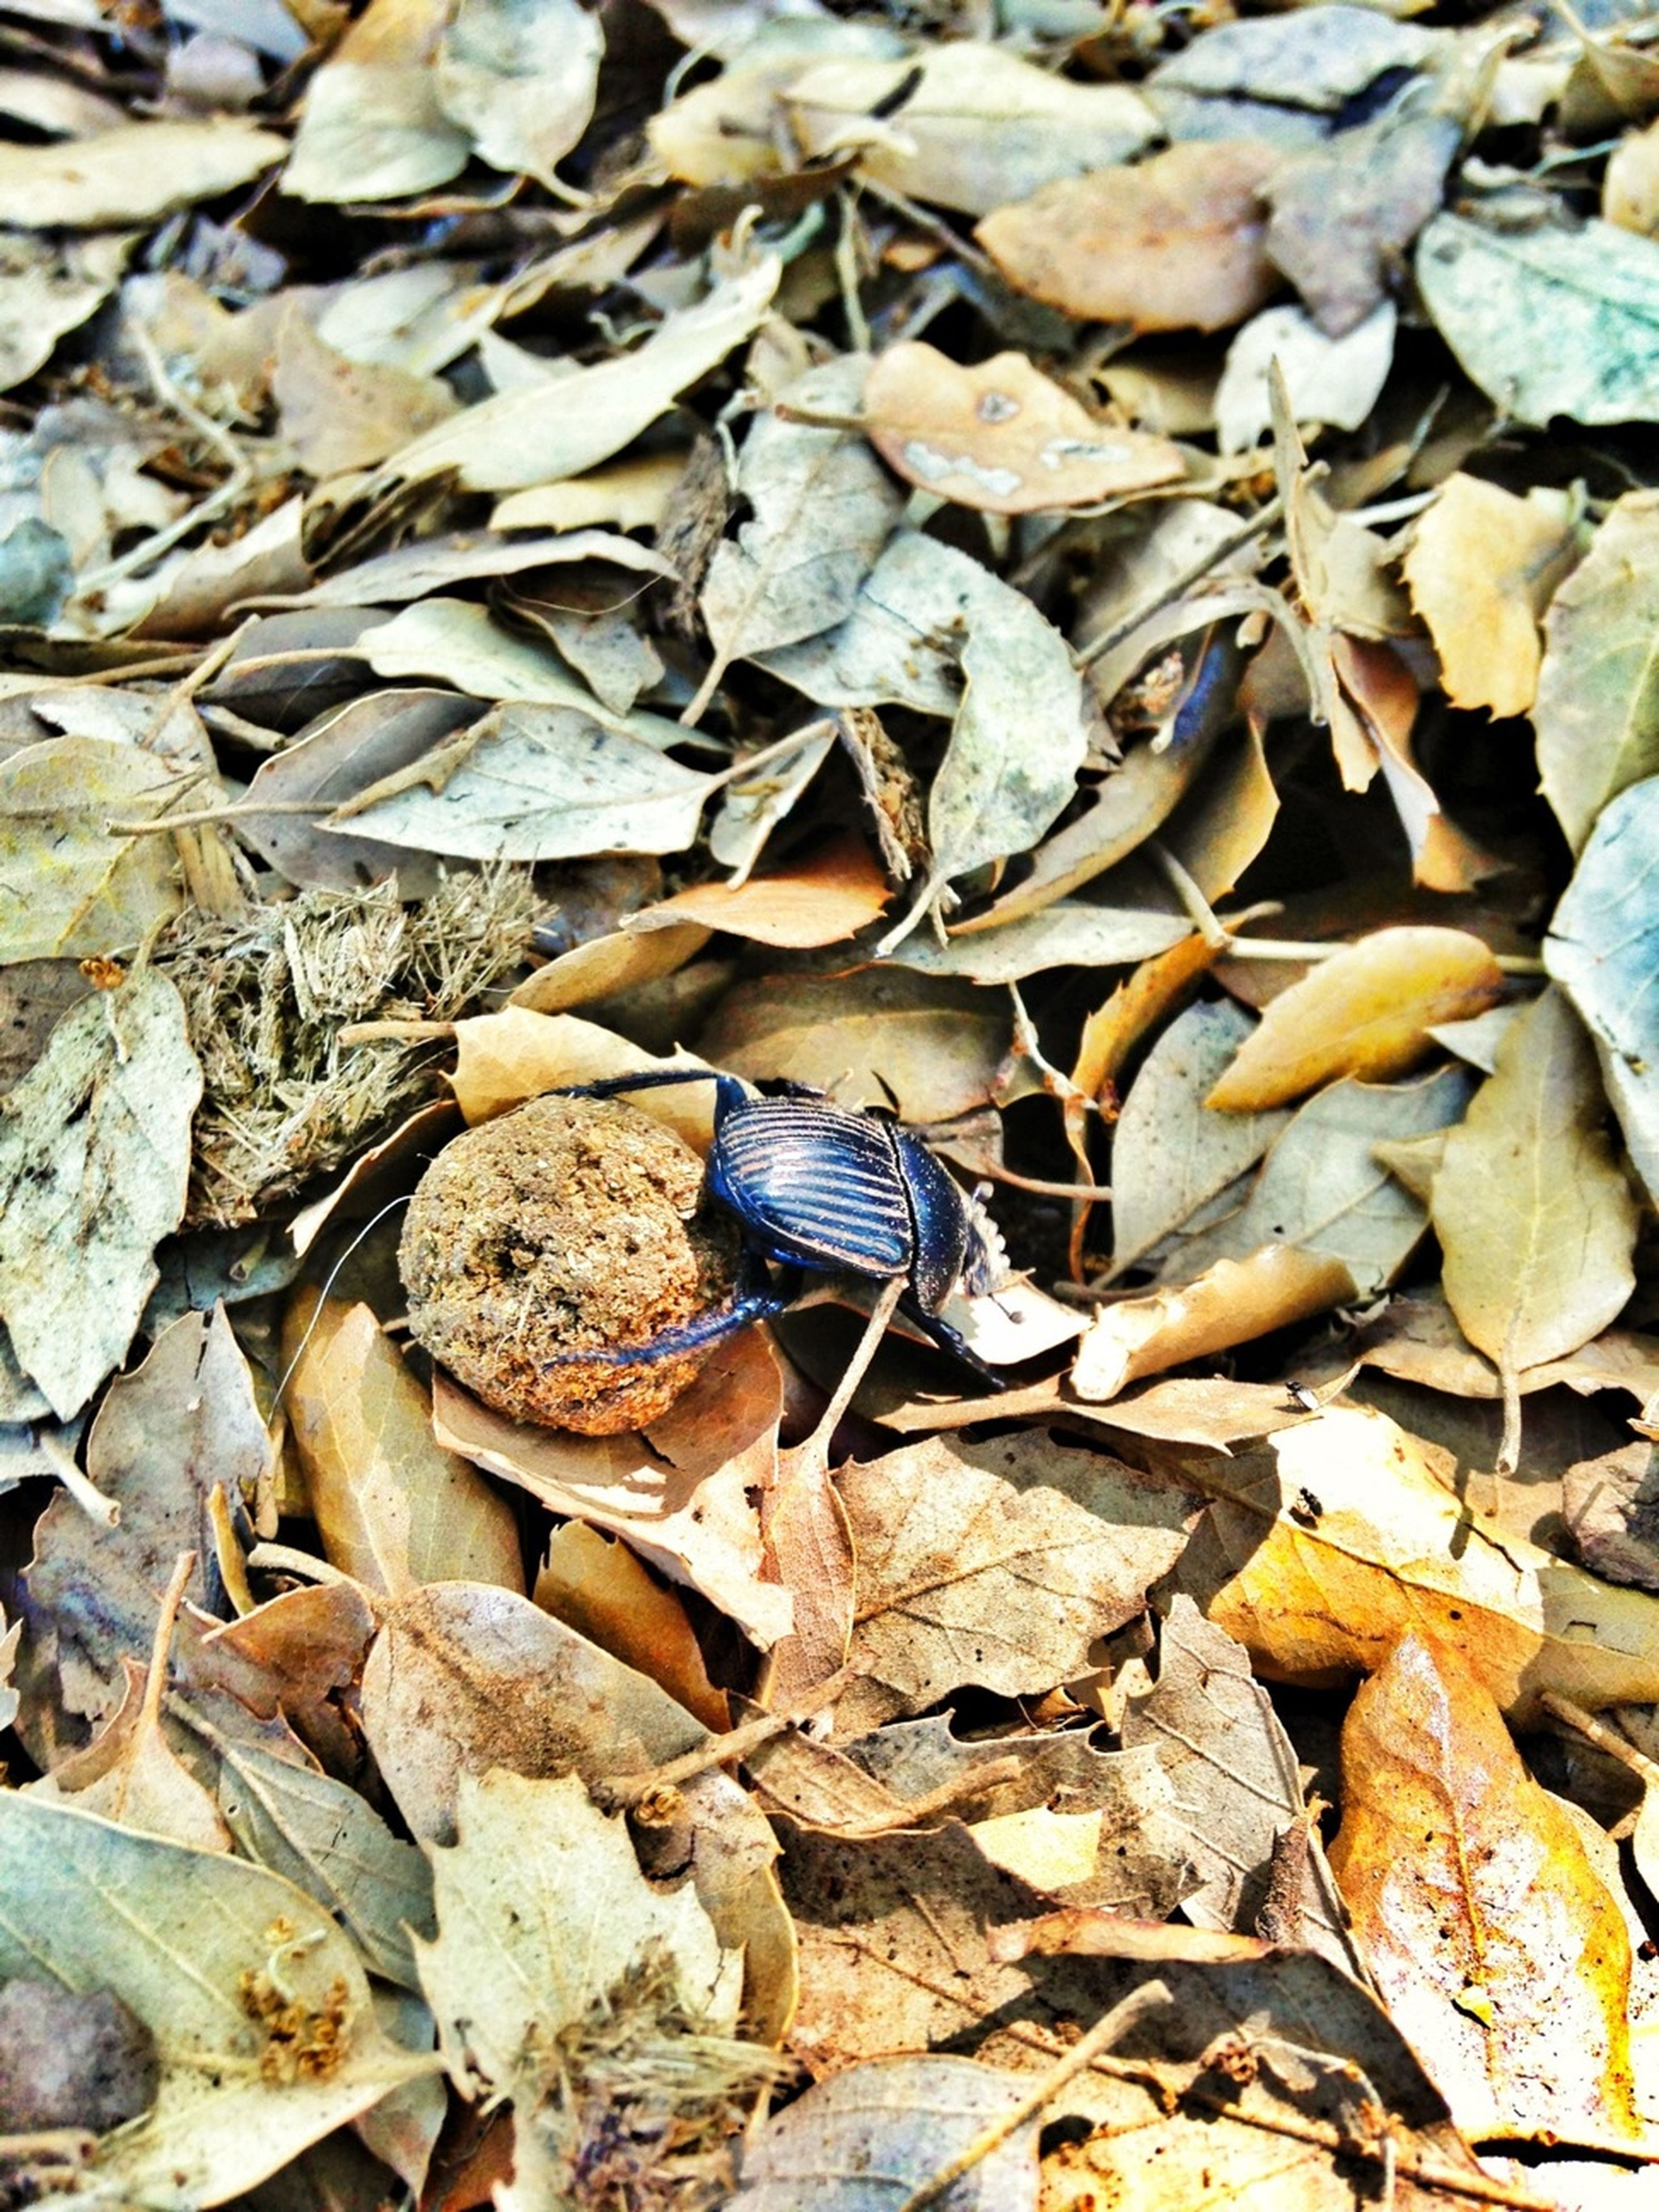 animal themes, animals in the wild, high angle view, one animal, wildlife, abundance, nature, leaf, full frame, insect, outdoors, autumn, day, dry, stone - object, backgrounds, close-up, natural pattern, field, no people